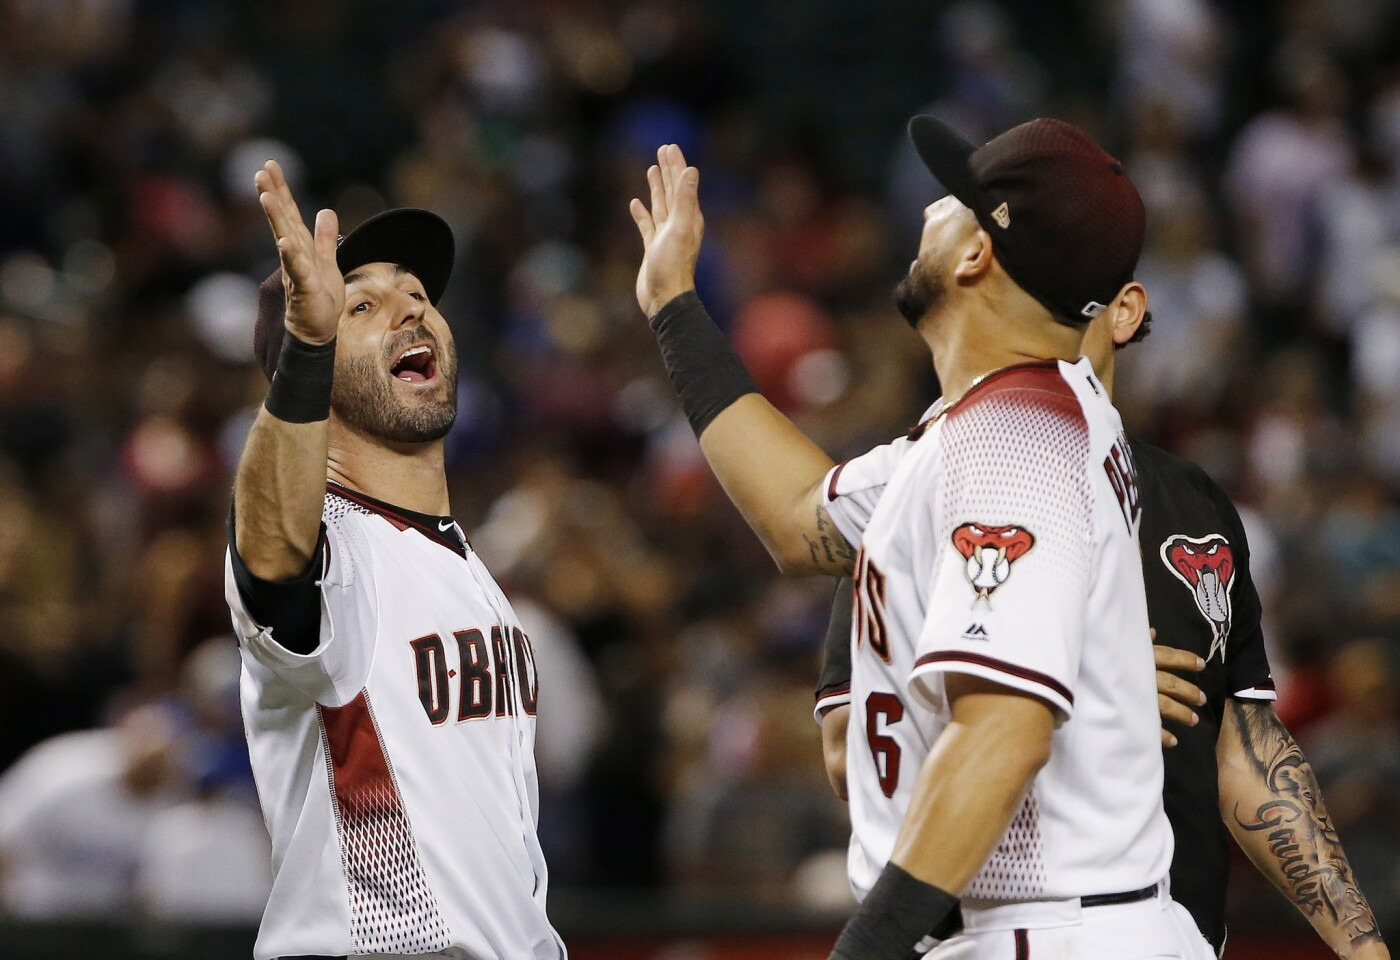 Arizona Diamondbacks' David Peralta, right, gives a high-five to Daniel Descalso after the team's baseball game against the Los Angeles Dodgers on Wednesday, Sept. 26, 2018, in Phoenix. The Diamondbacks defeated the Dodgers 7-2. (AP Photo/Ross D. Franklin)